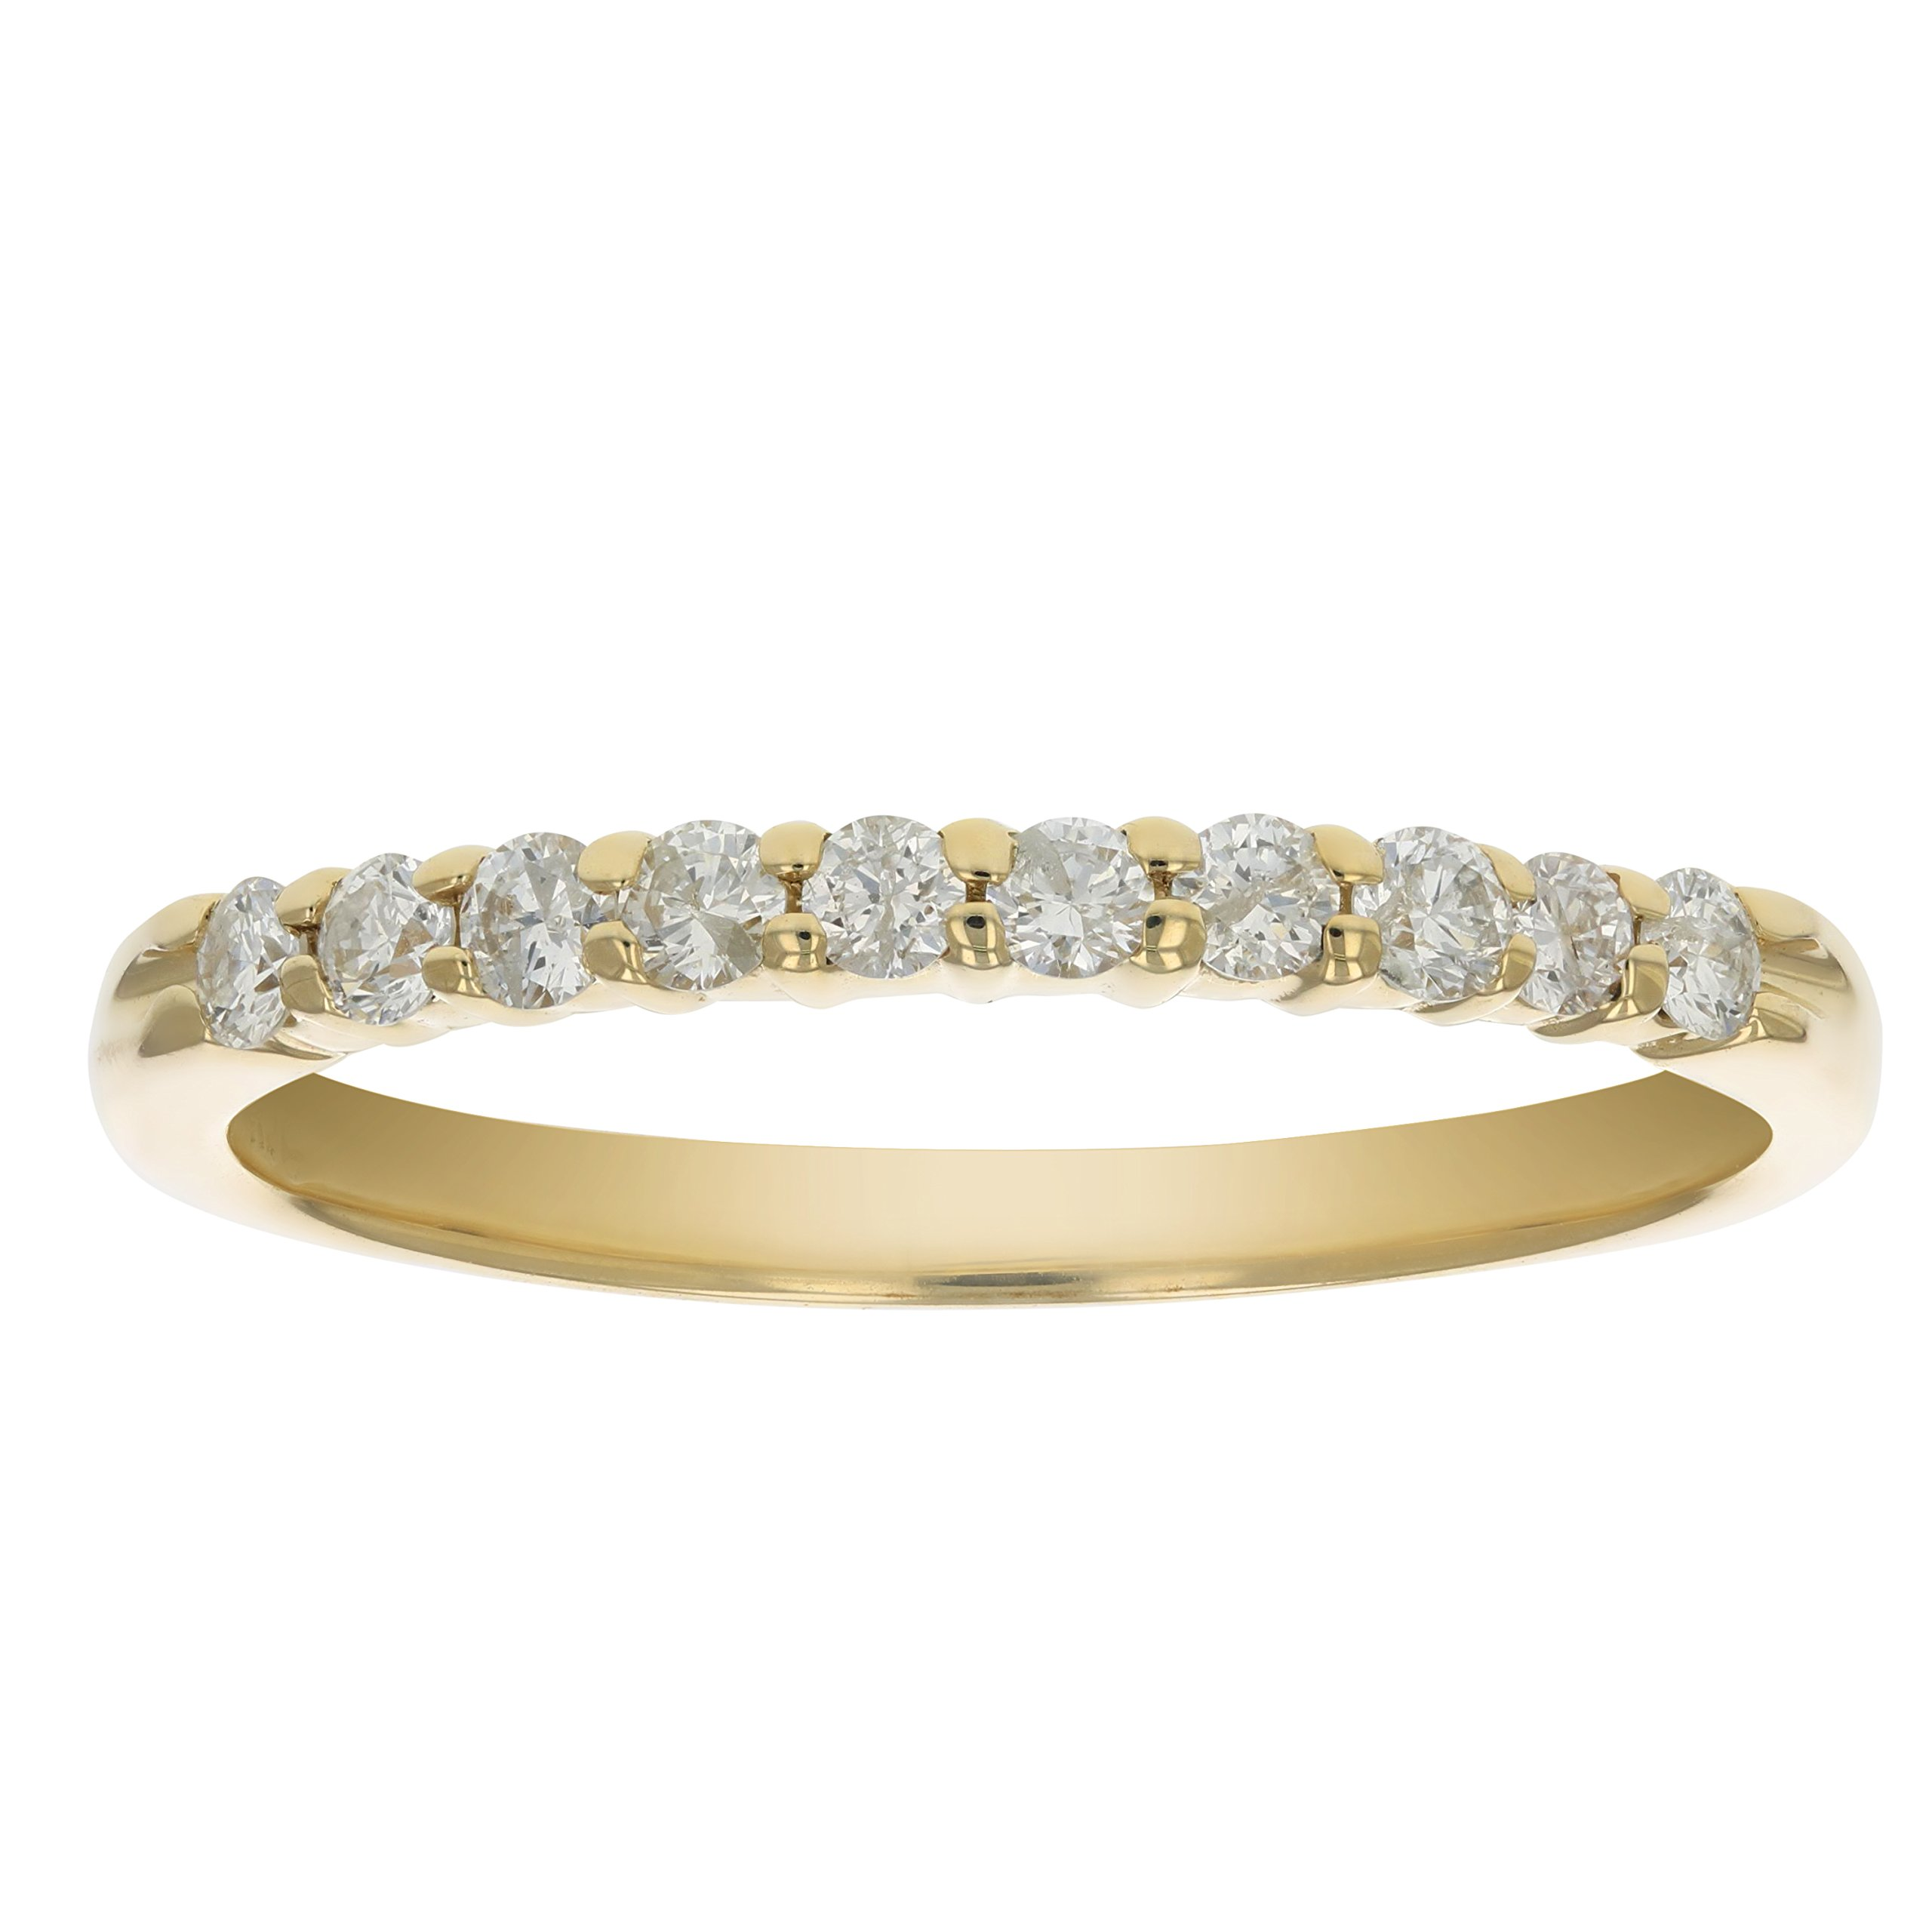 AGS Certified SI2-I1 1/3 ctw Diamond Wedding Band 14K Yellow Gold Size 8